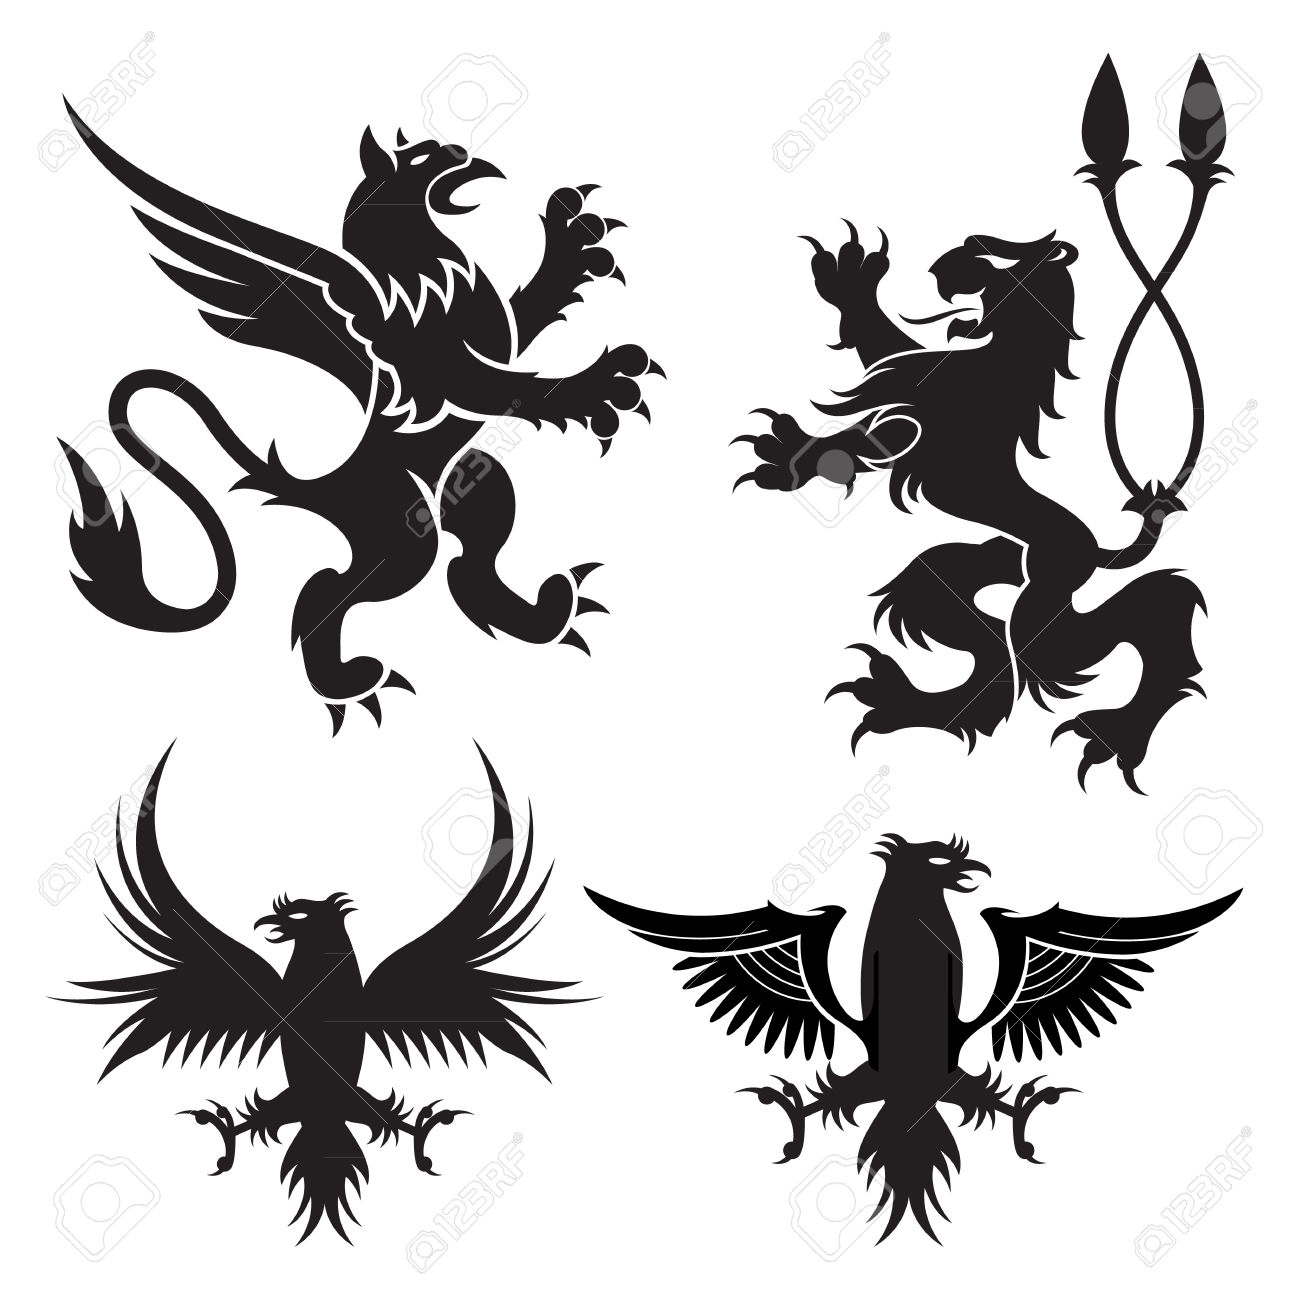 Ancient Heraldic Griffins Symbols Of Black Majestic Beasts With.